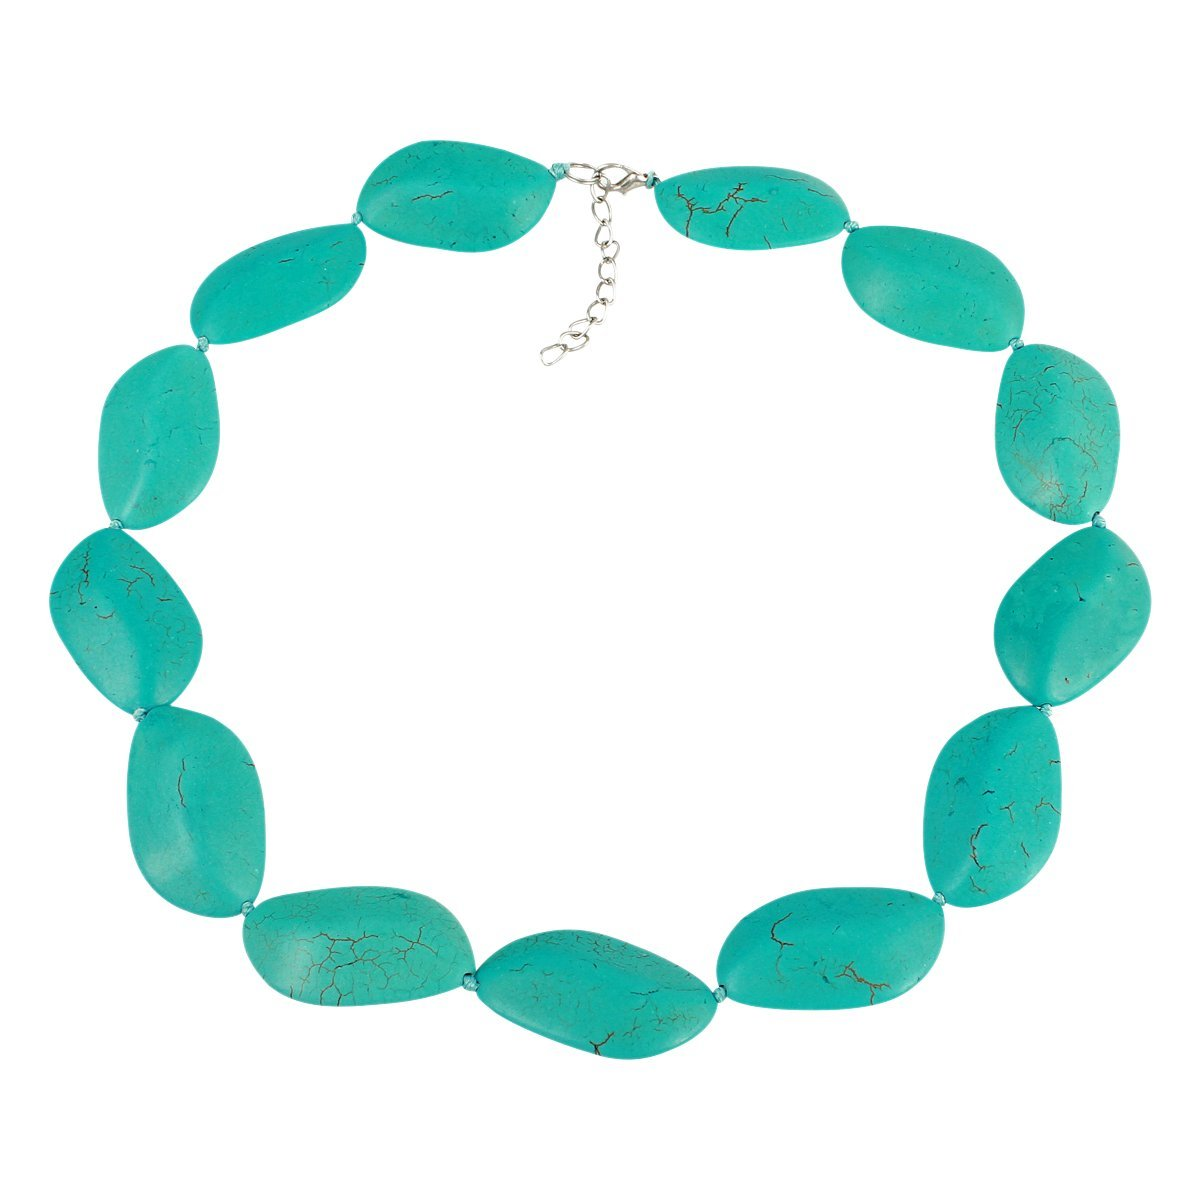 Diamond-Shaped Simulated Turquoise Stone Necklace